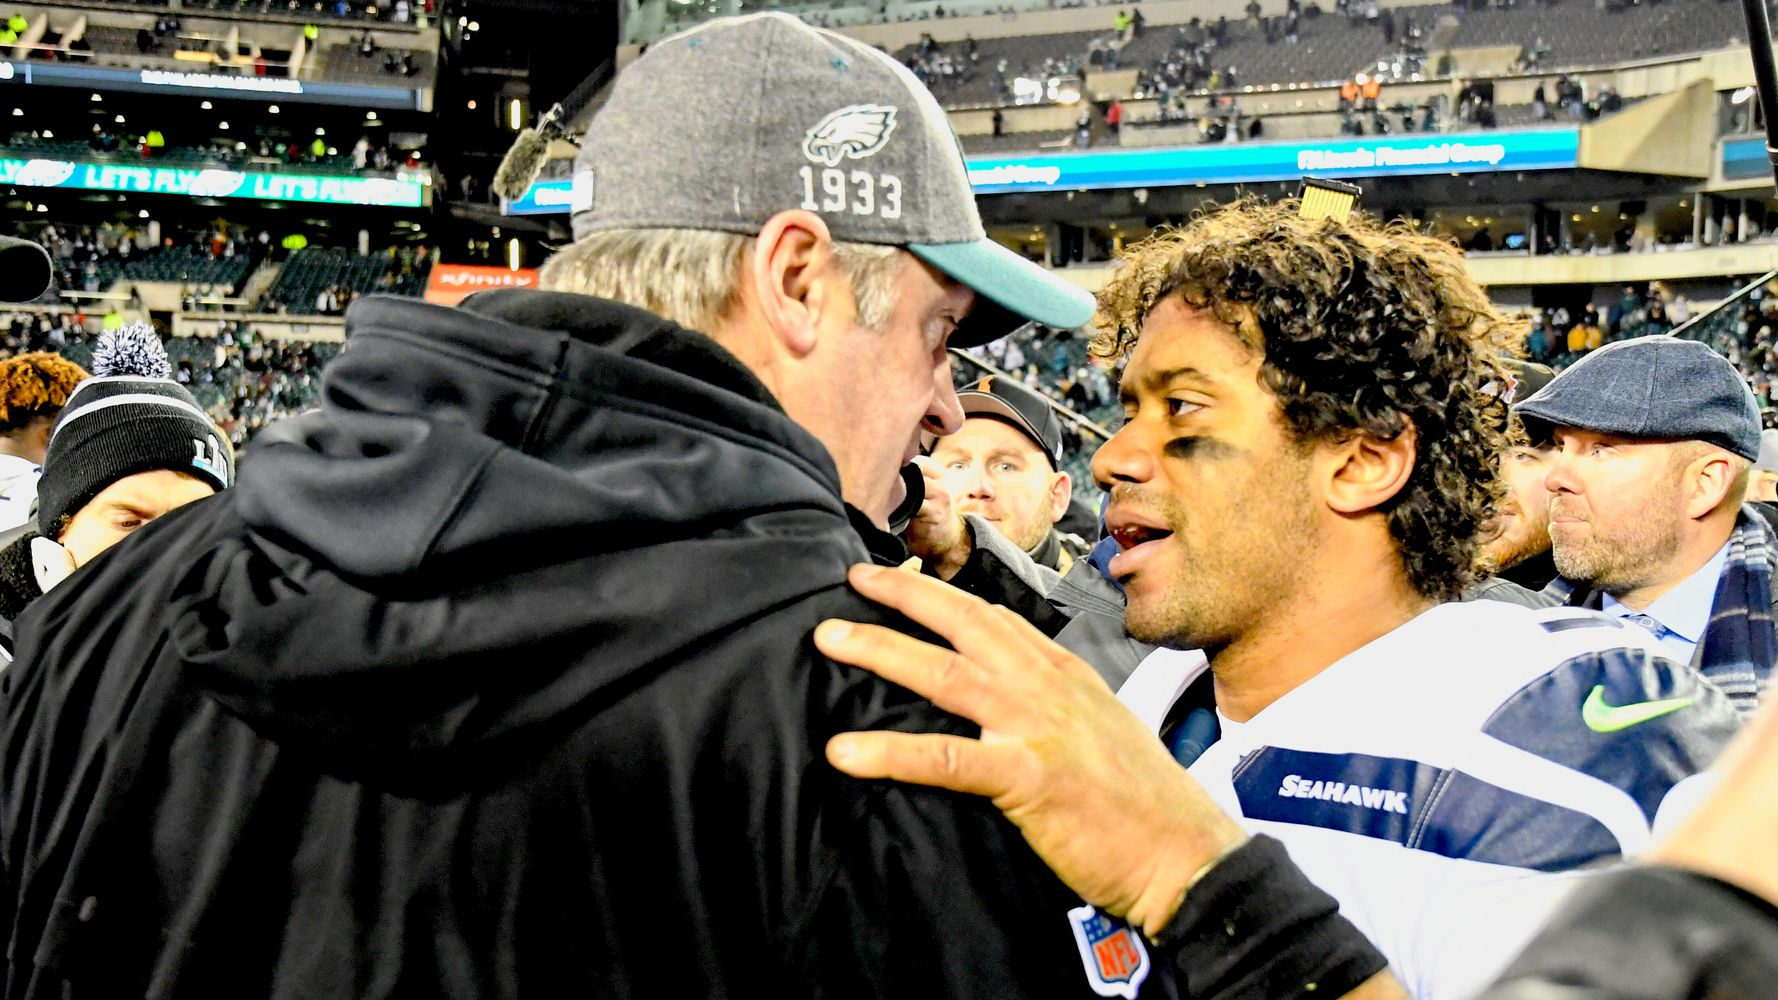 Westlake Legal Group 5e132eb725000045bad31e98 Russell Wilson's 'Class' Words To Eagles Coach Put Win In Perspective